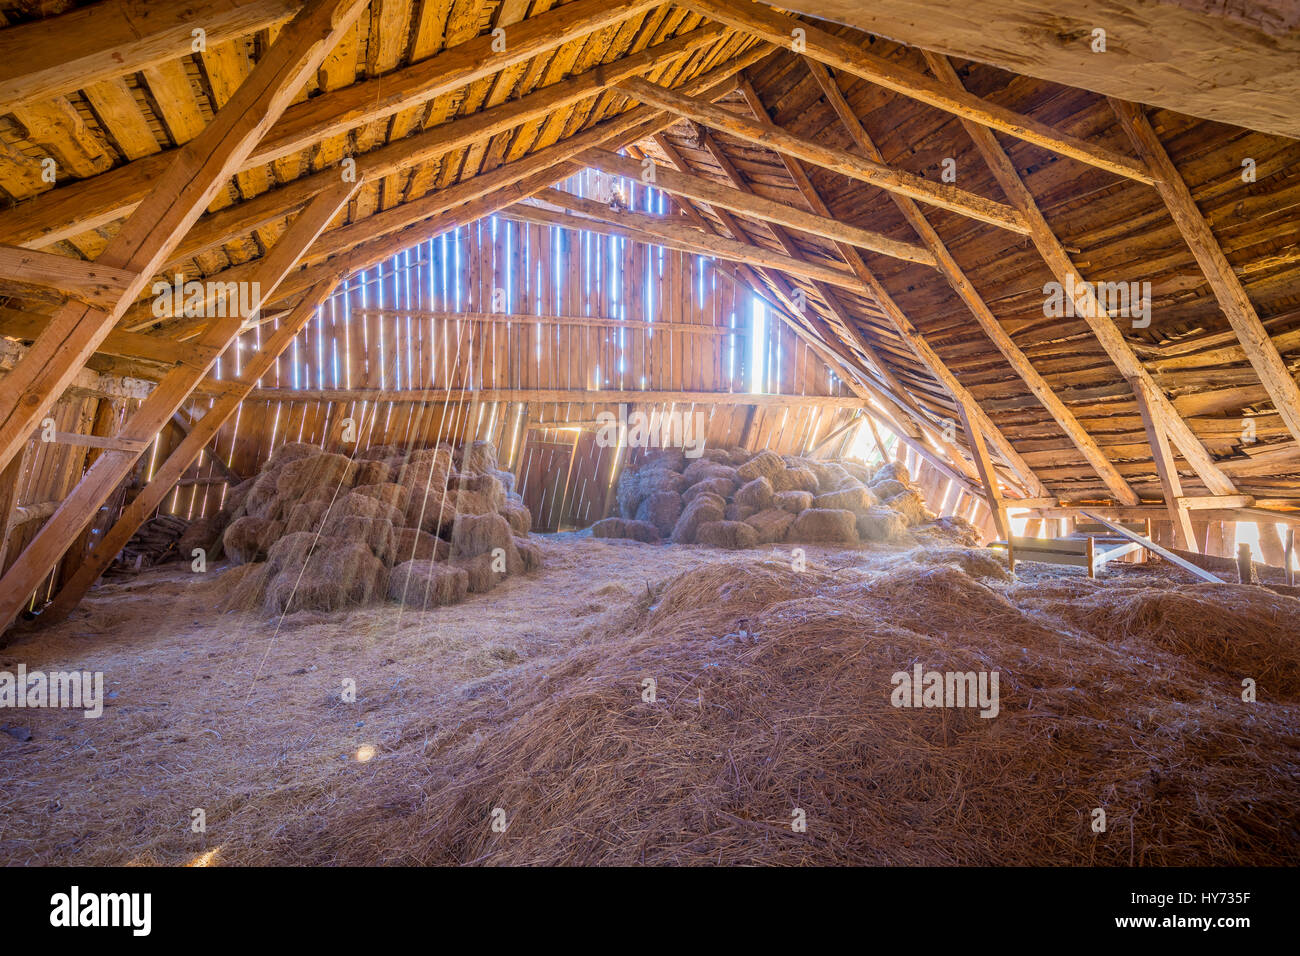 Hay loft in old barn in Sweden. - Stock Image